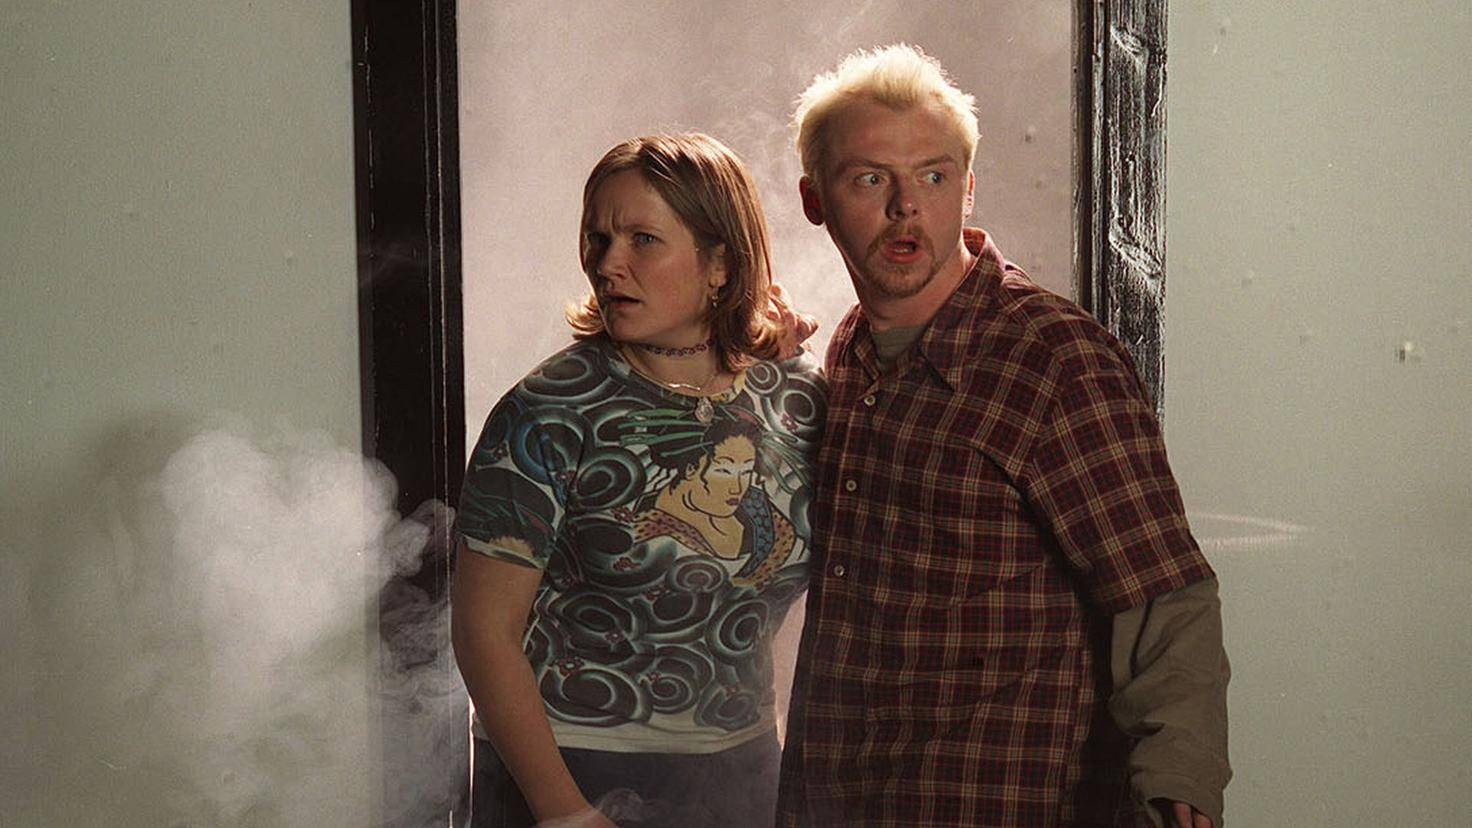 Spaced-simon-pegg-jessica-hynes